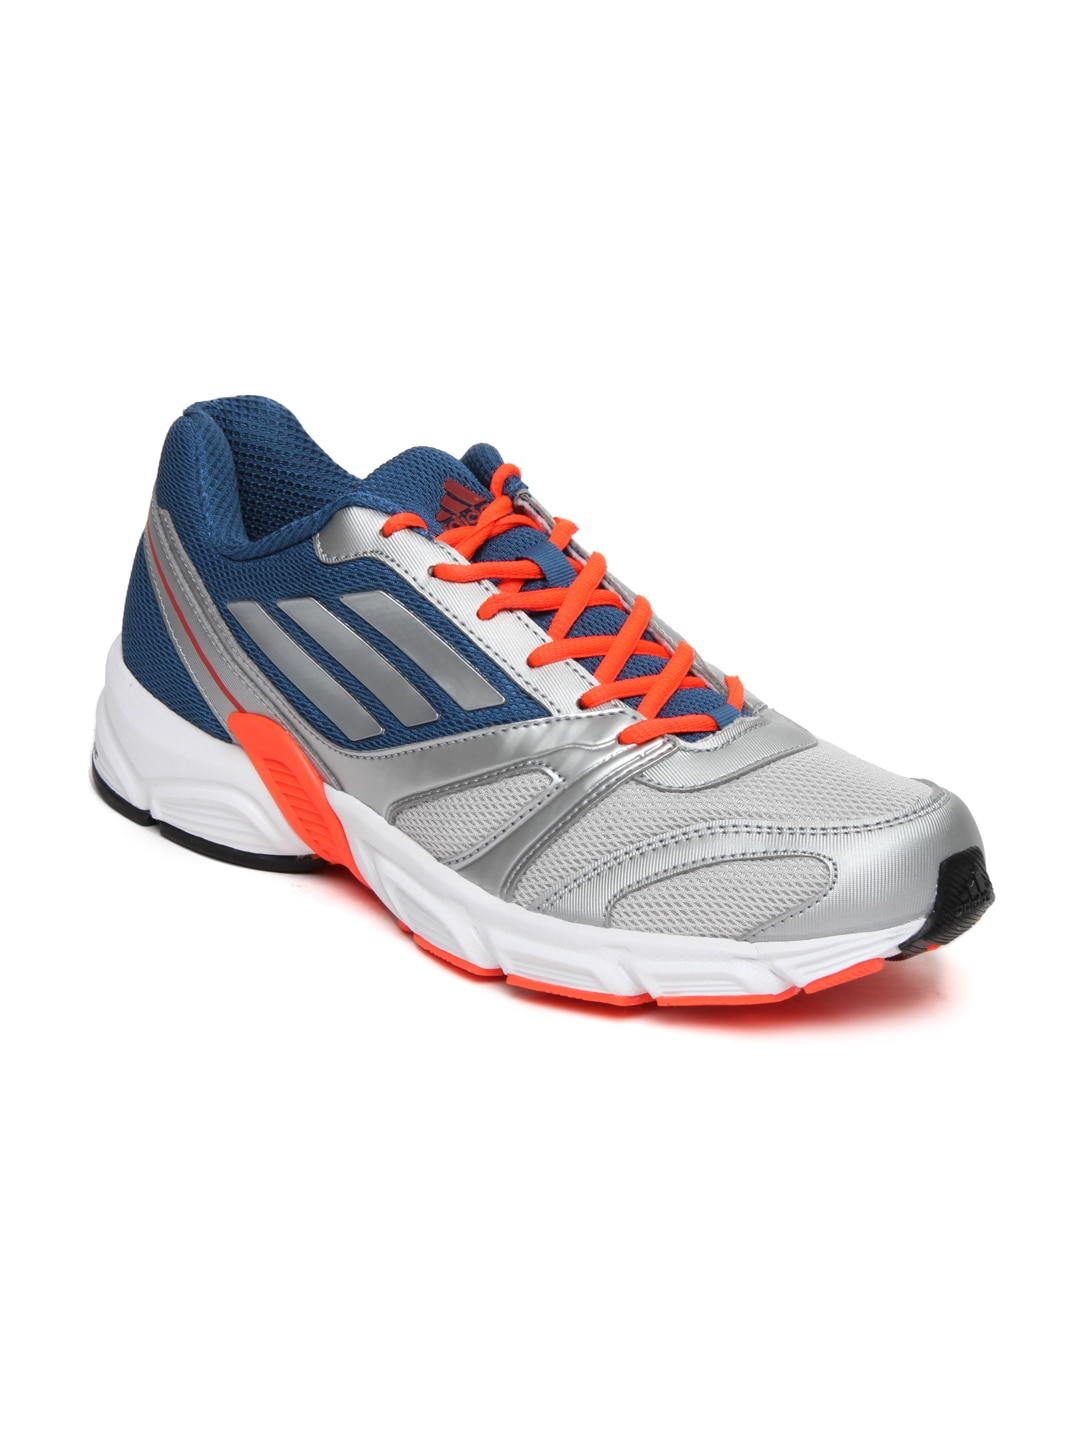 promo code d3705 cb00f Adidas d70674 Men Silver Toned And Blue Hachi M Sports Shoes- Price in India